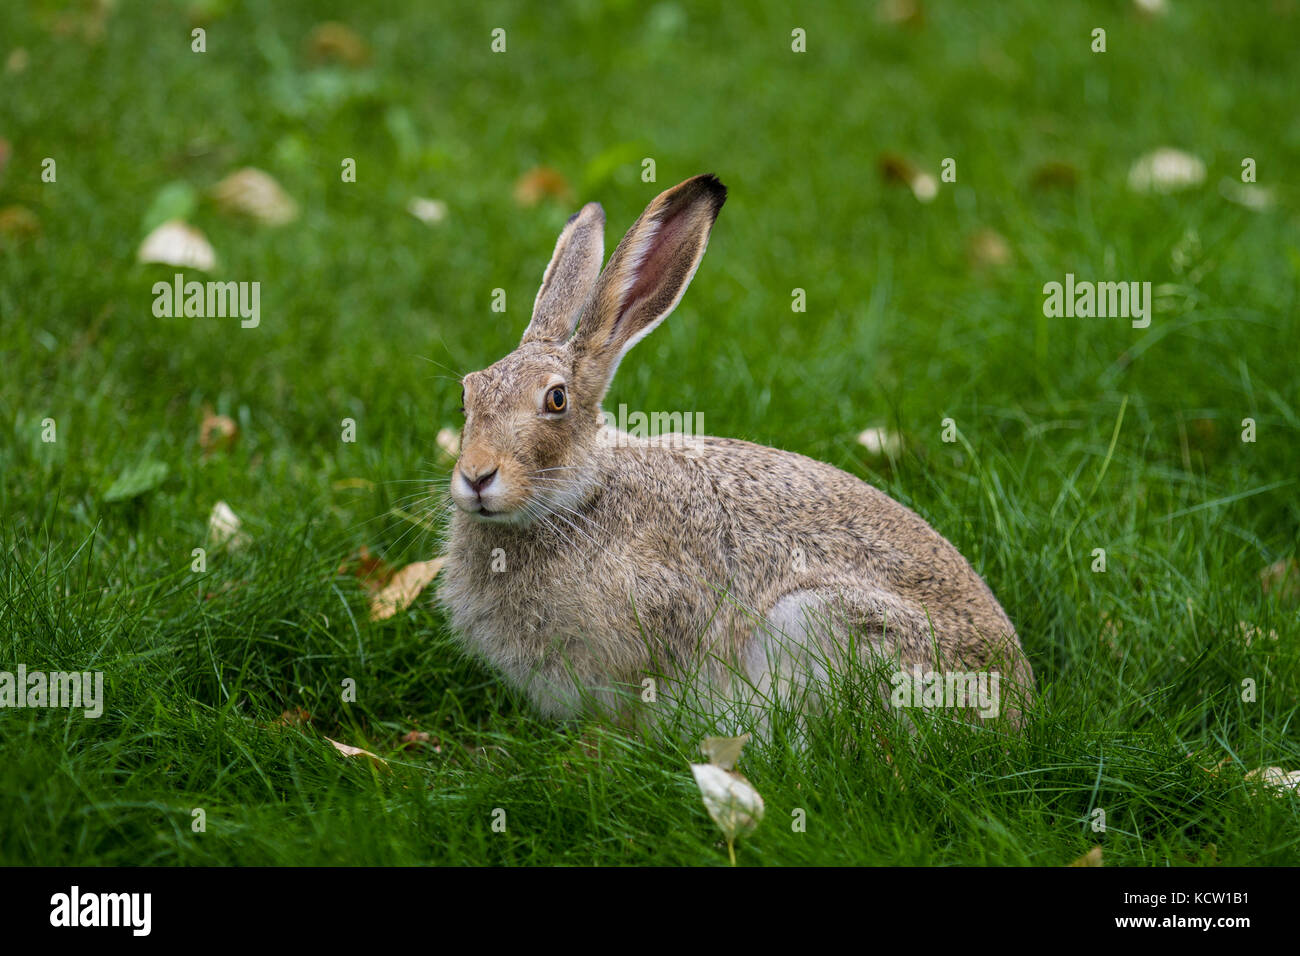 Cottontail Rabbit (Sylvilagus floridanus) City cottontail, remainng motionless, sitting in the green grass, looking - Stock Image